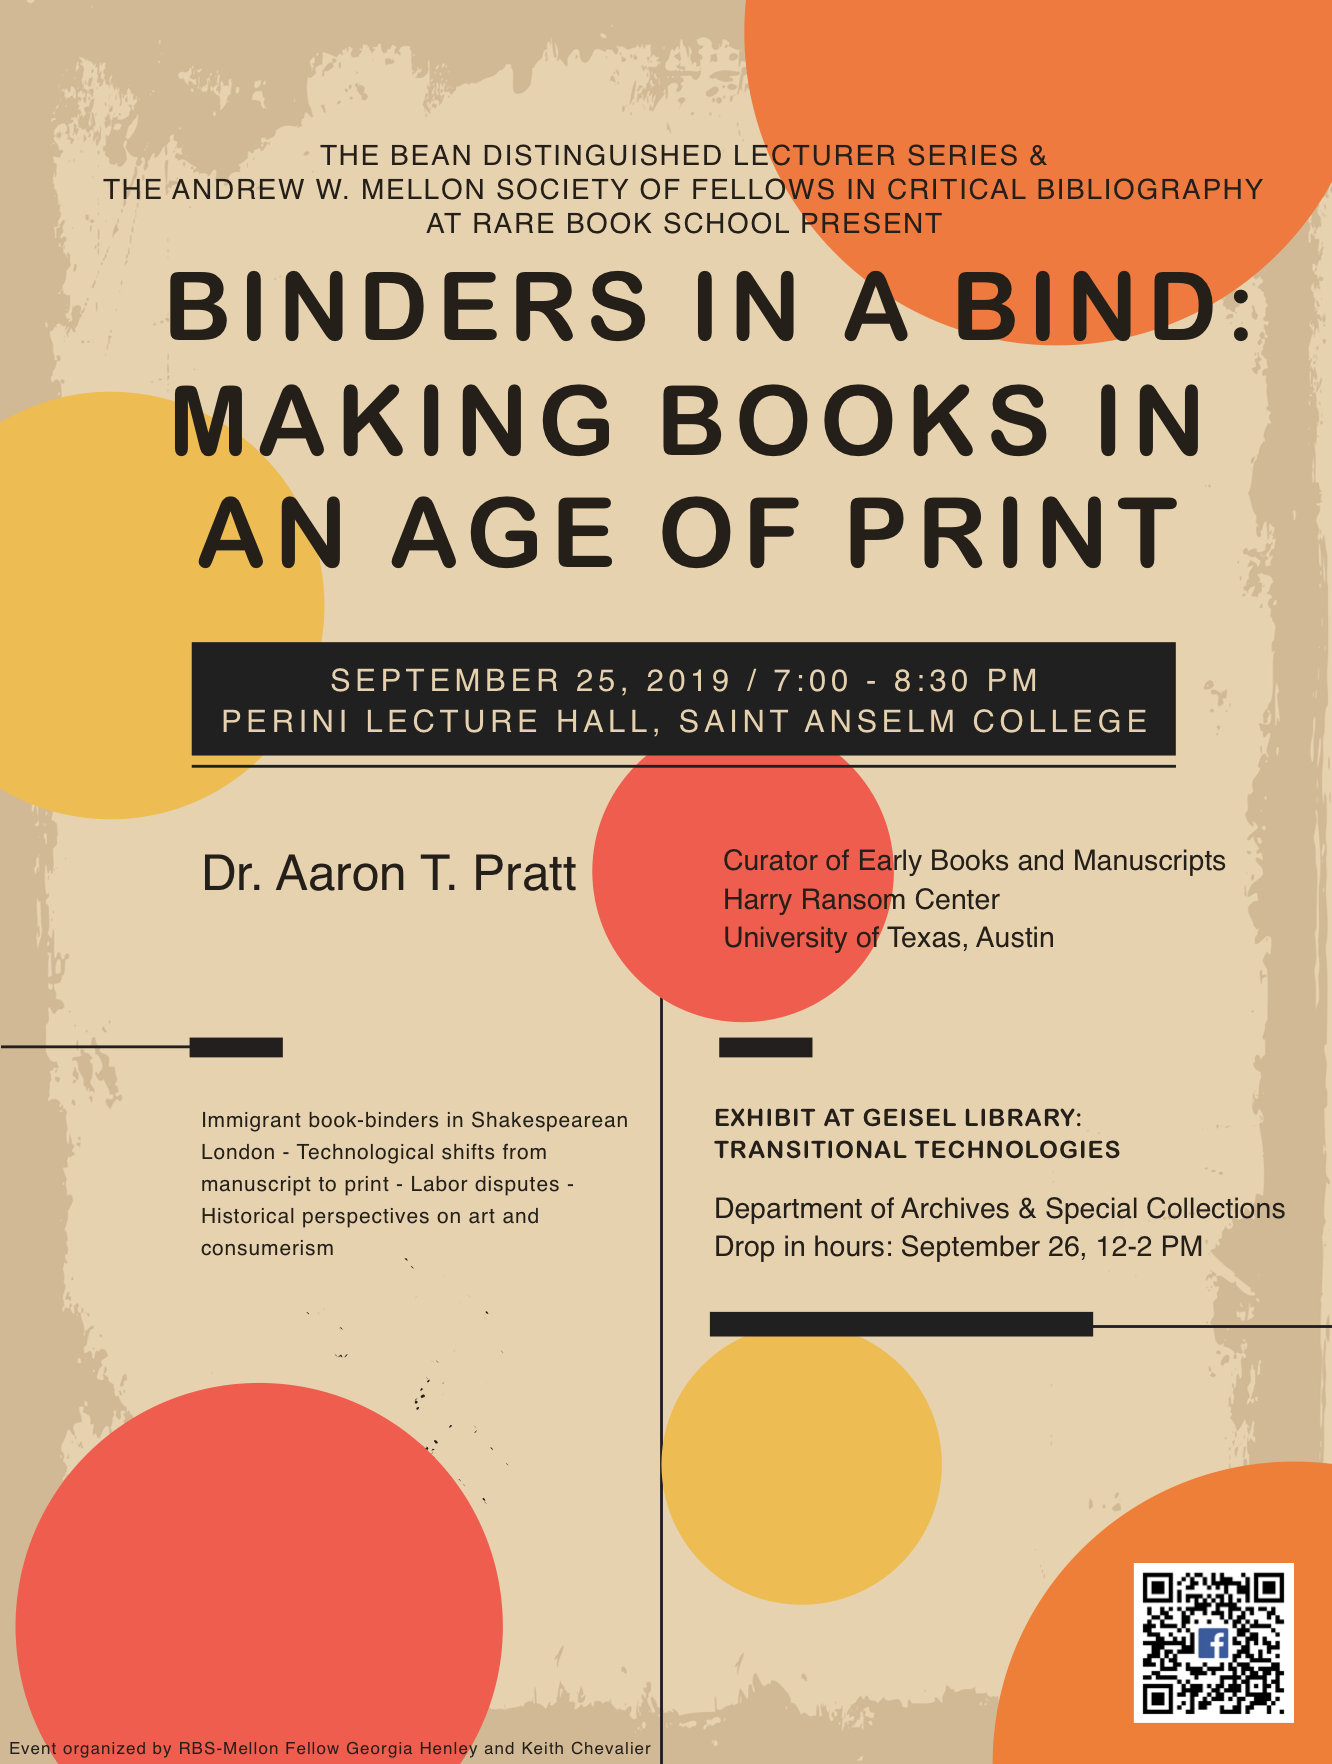 Binders in a Bind lecture promotional poster